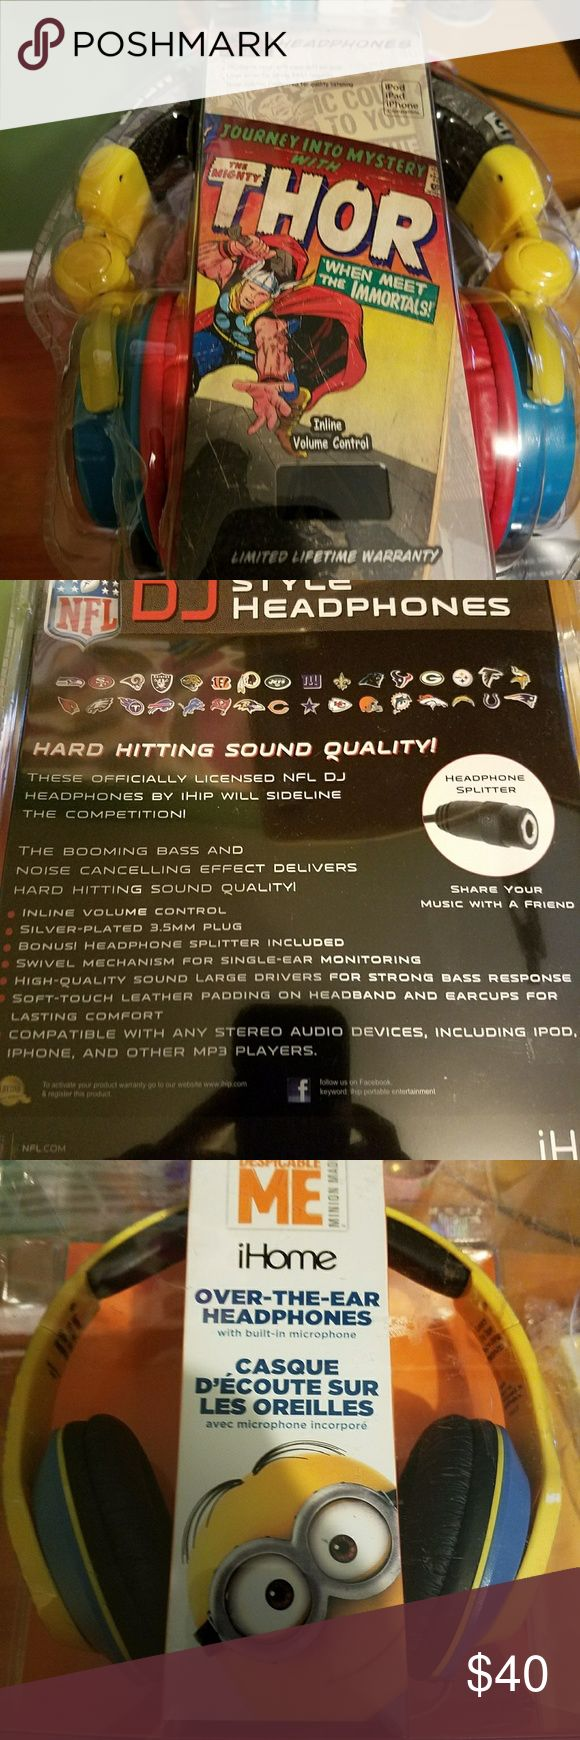 Brand new headphones I have three NFL patriots DJ headphones, one Despicable me, one Thor and one Wolverine headphone set. All made by ihip. All are in original packaging, no damage whatsoever so rock out in style with your favorite team or excite your child with his favorite characters to tune to. Ihip Other